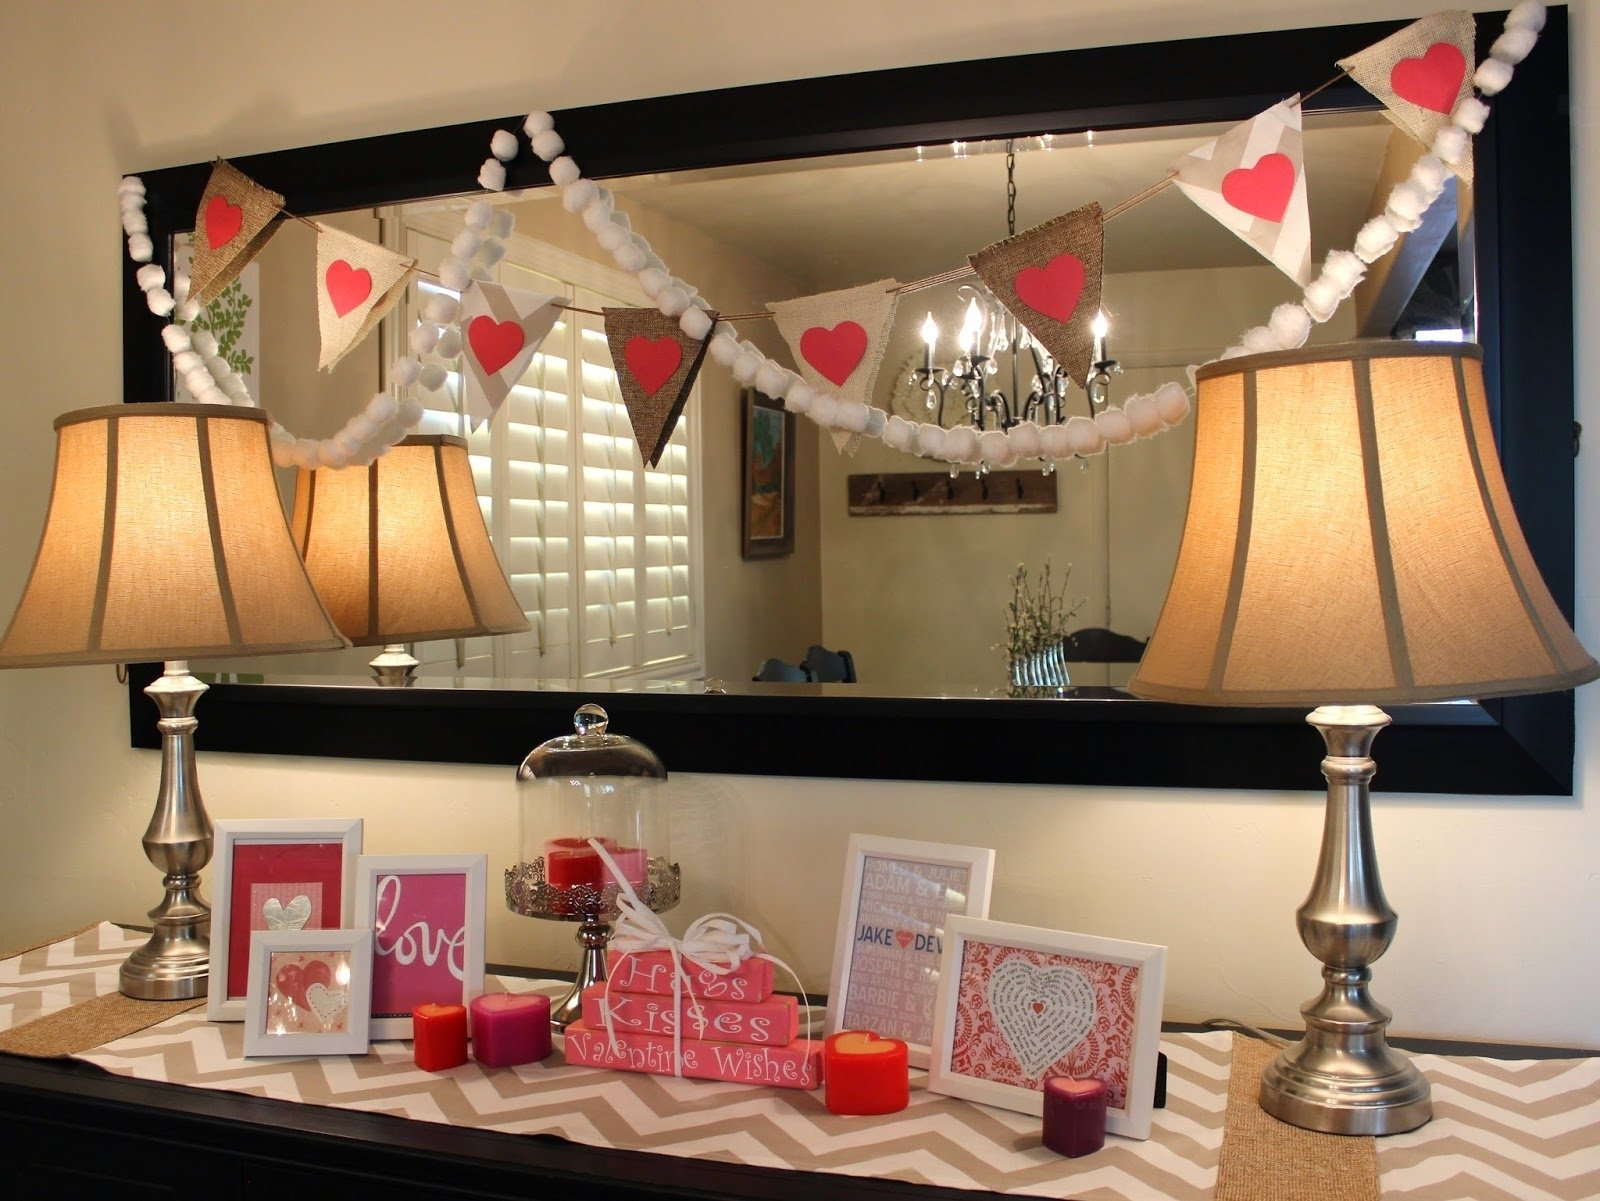 10 Fantastic At Home Valentines Day Ideas tantalizing home living room valentine day deco containing polished